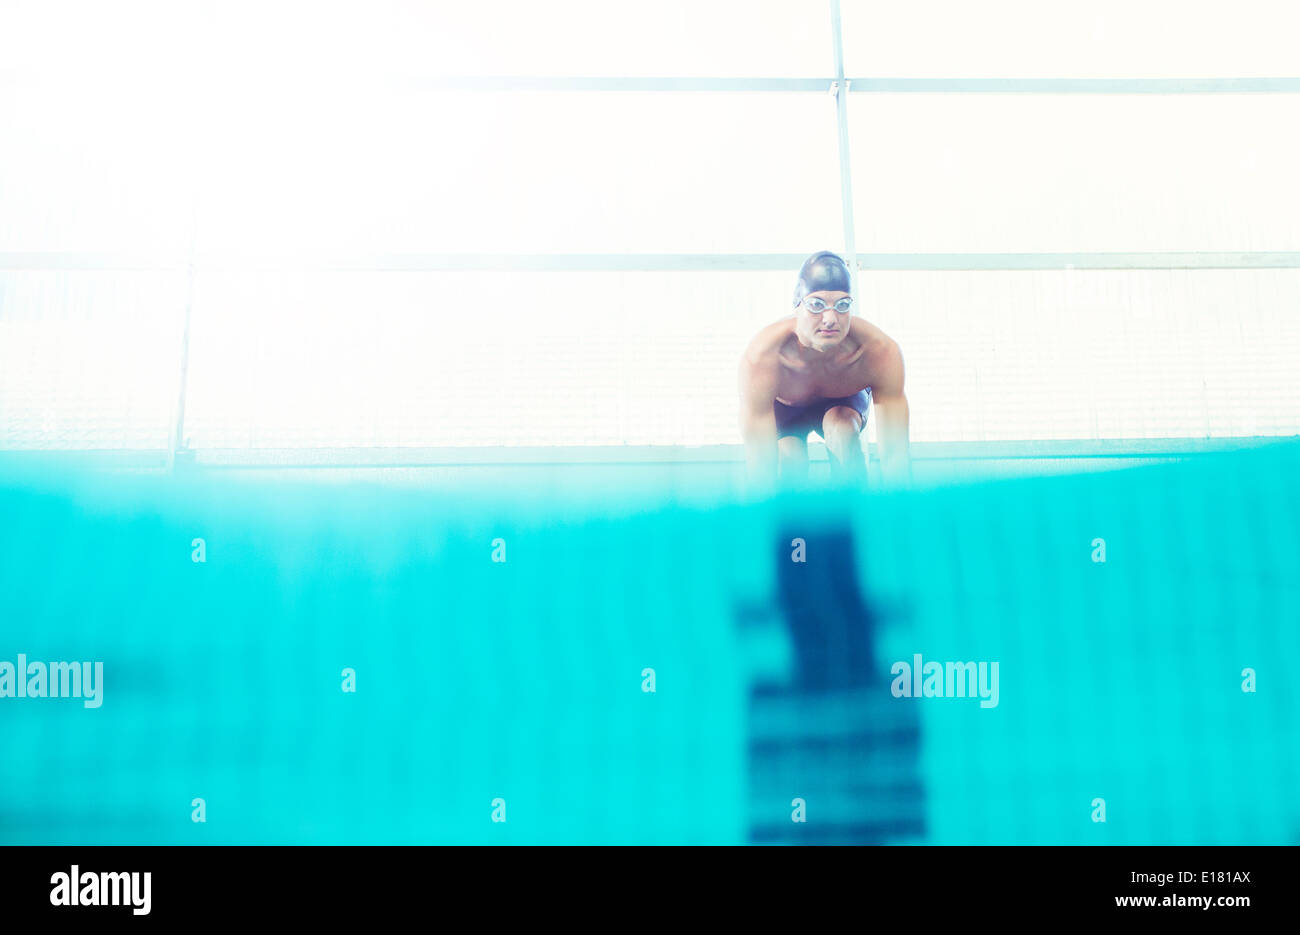 Swimmers poised on starting blocks - Stock Image